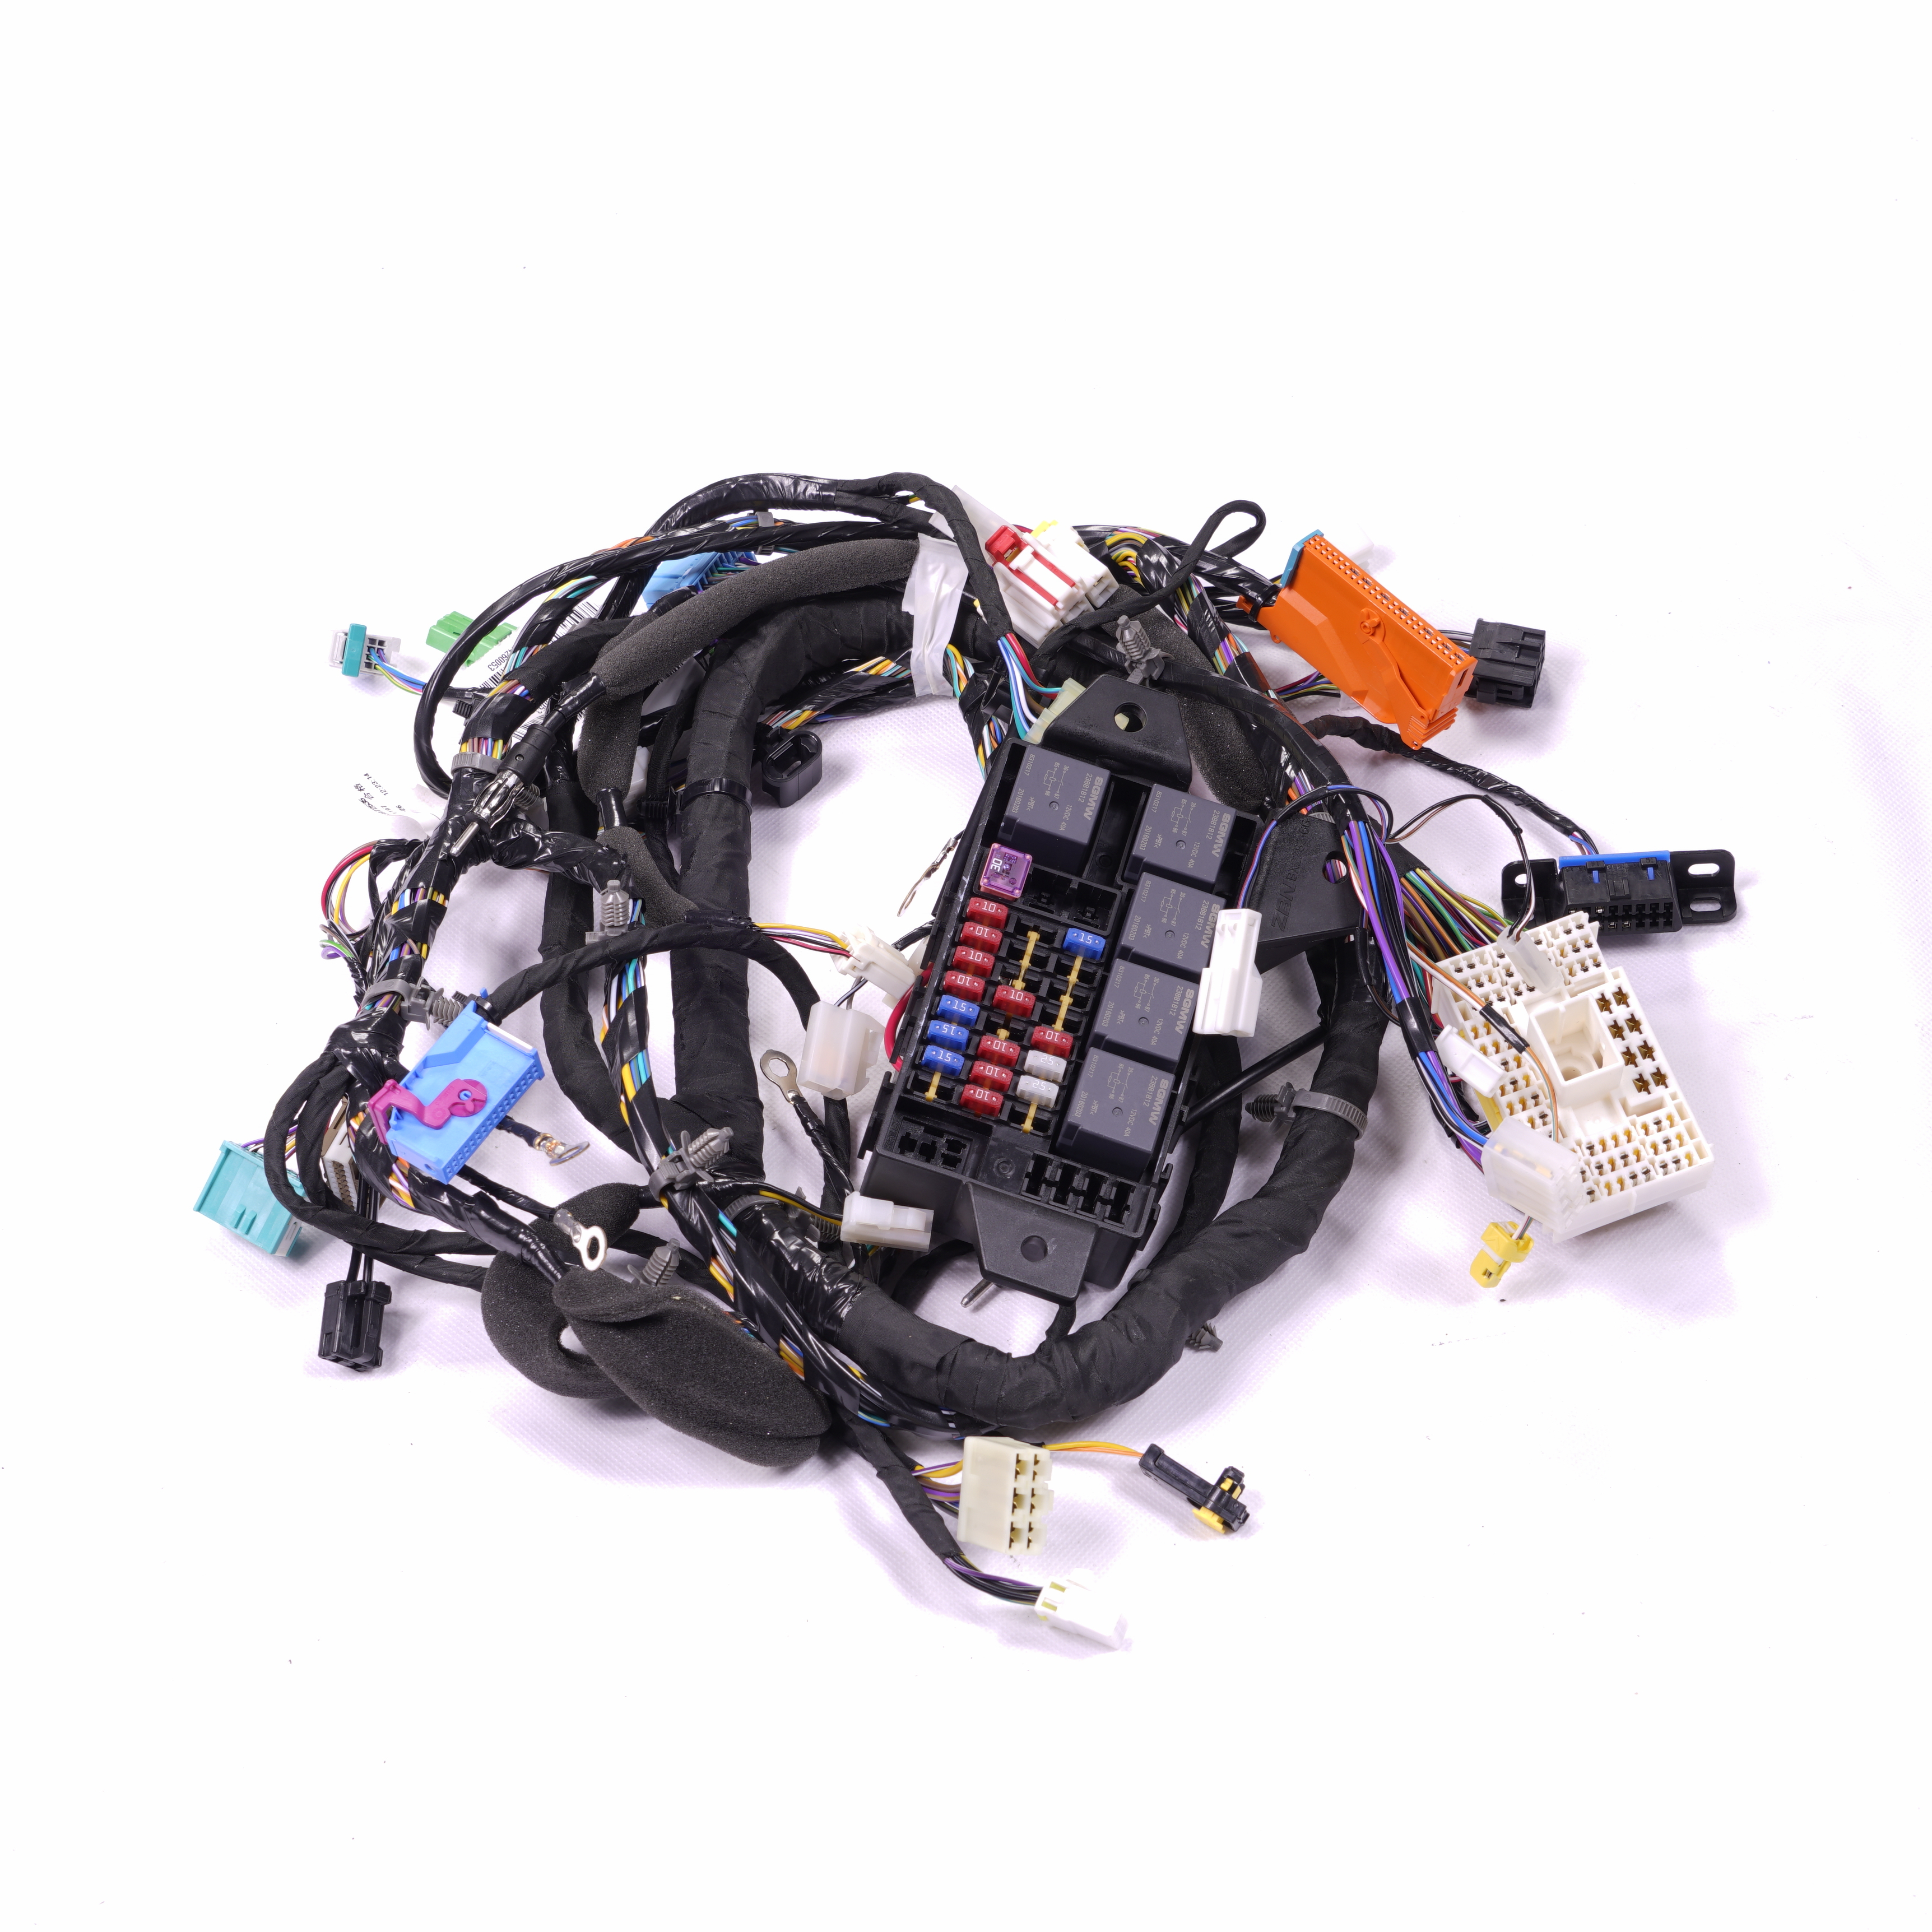 [ZSVE_7041]  Mini Truck Instrument Panel Wiring Harness Assembly - Buy Sgmw Gp53  Instrument Pannel Wiring Harness Large Assembly 23972535,Light Truck Wiring  Harness,Mini Truck Ip Wire Harness Product on Alibaba.com | Truck Wiring Harness |  | Alibaba.com